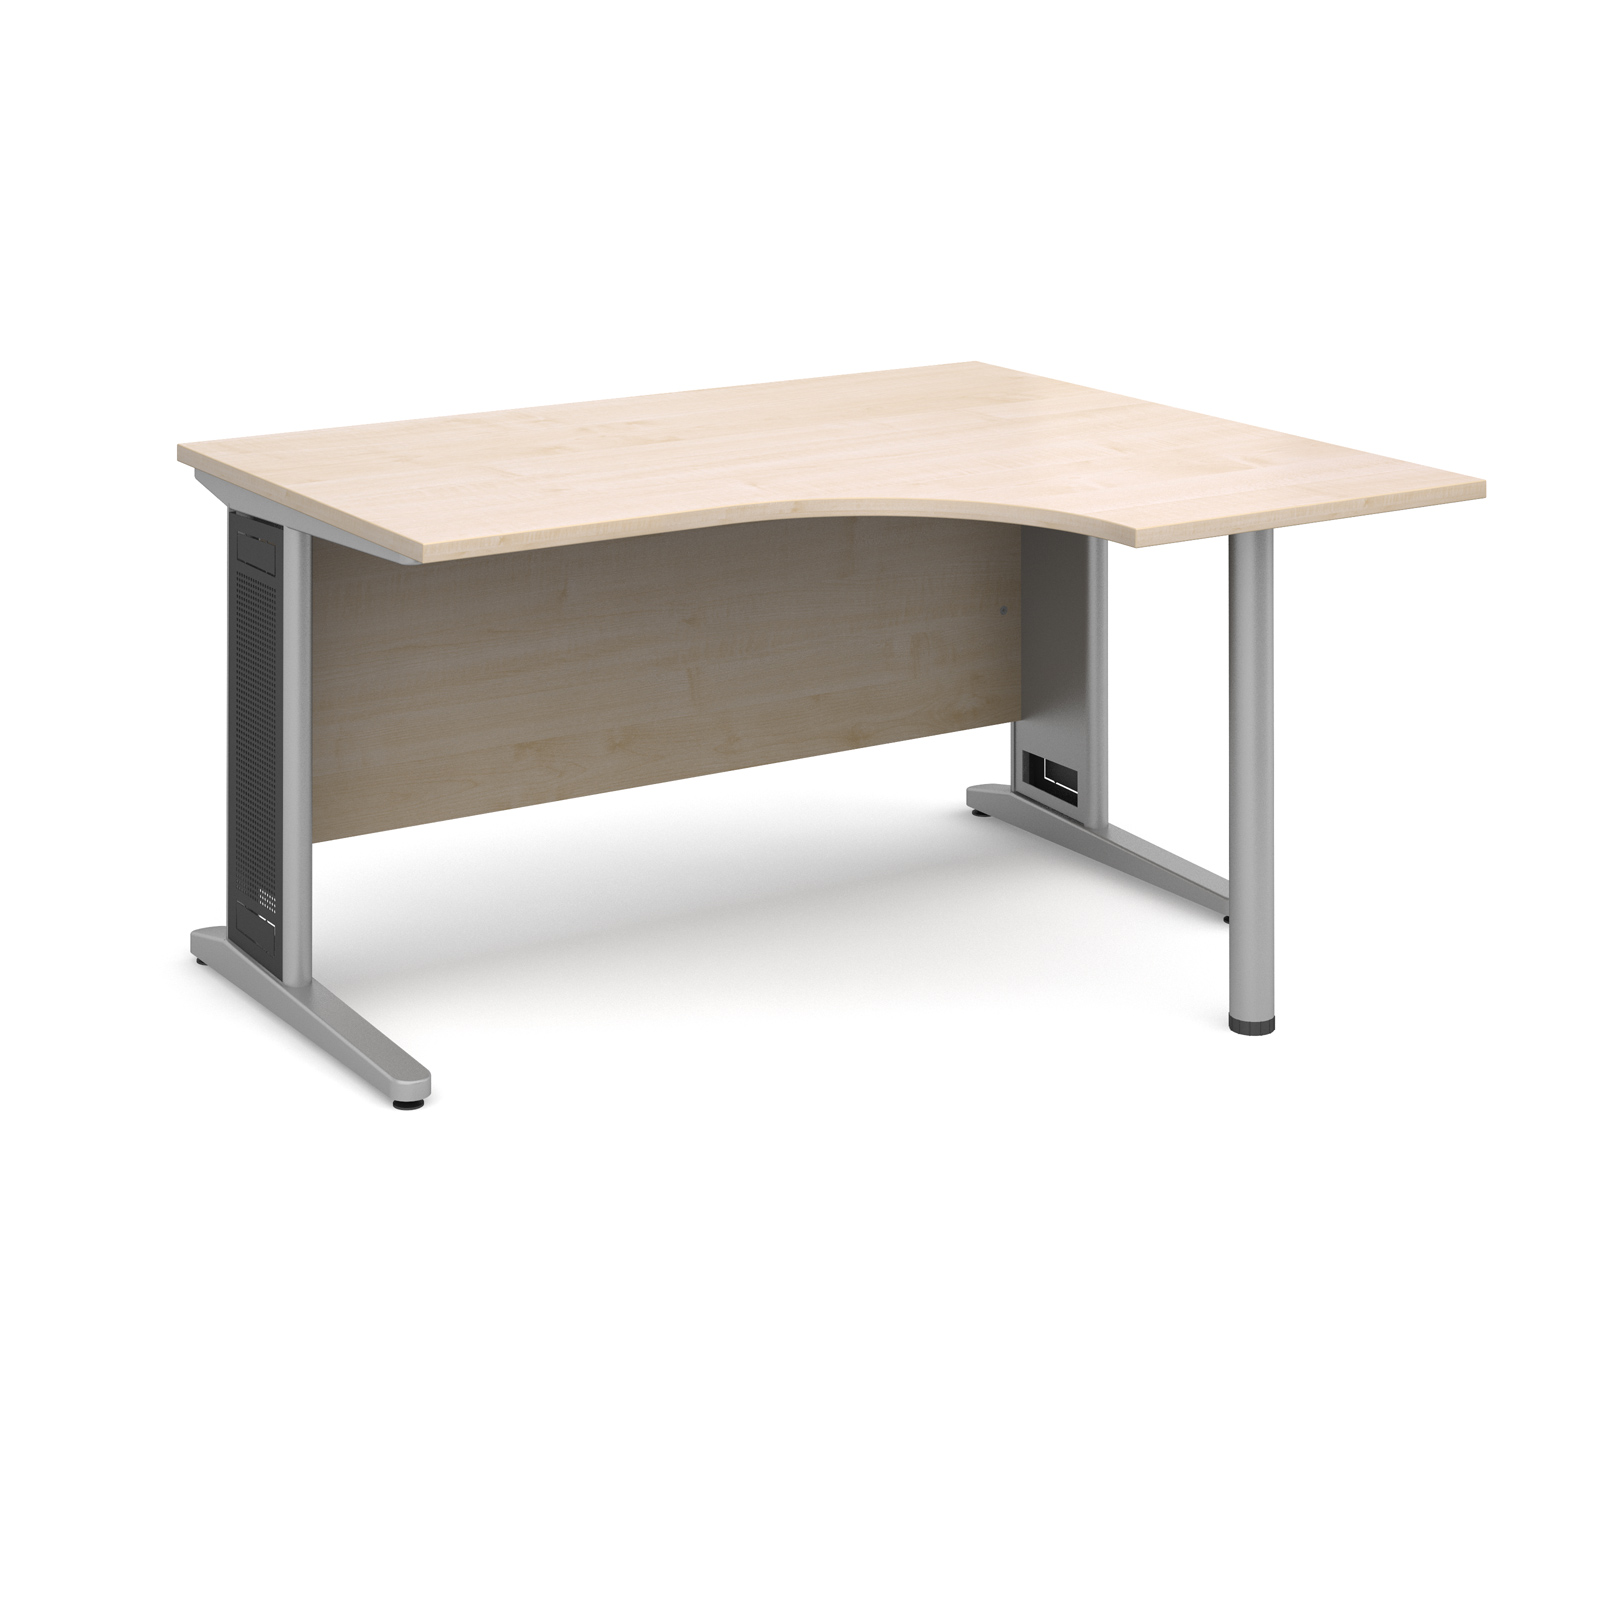 Largo right hand ergonomic desk 1400mm - silver cantilever frame with removable grill, maple top